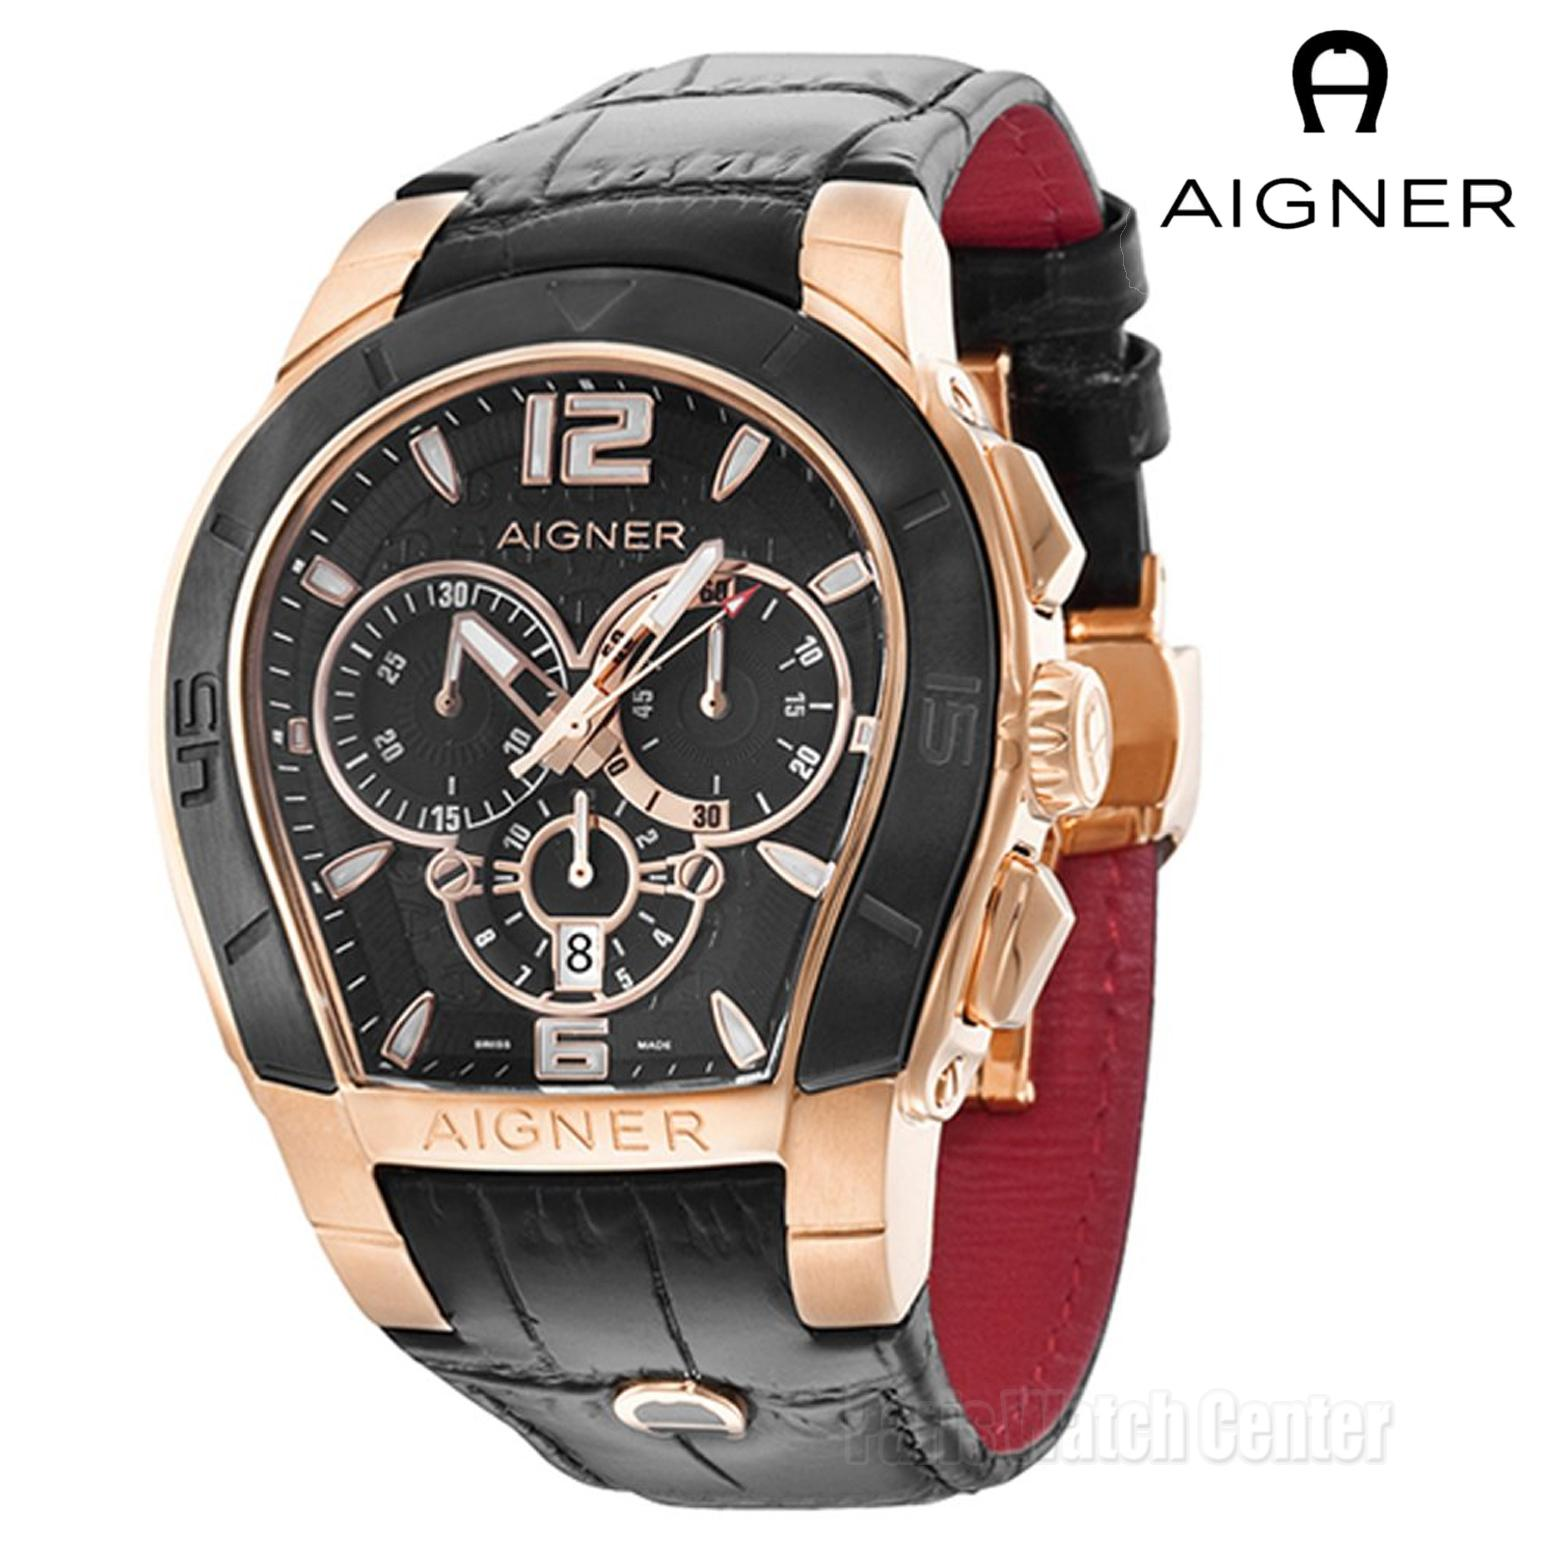 Buy Sell Cheapest Aigner A58106 Palermo Best Quality Product Deals Swiss Navy Jam Tangan Pria Hitam Rosegold Leather Strap Sn 8647 Dan Wanita Unisex Chrono